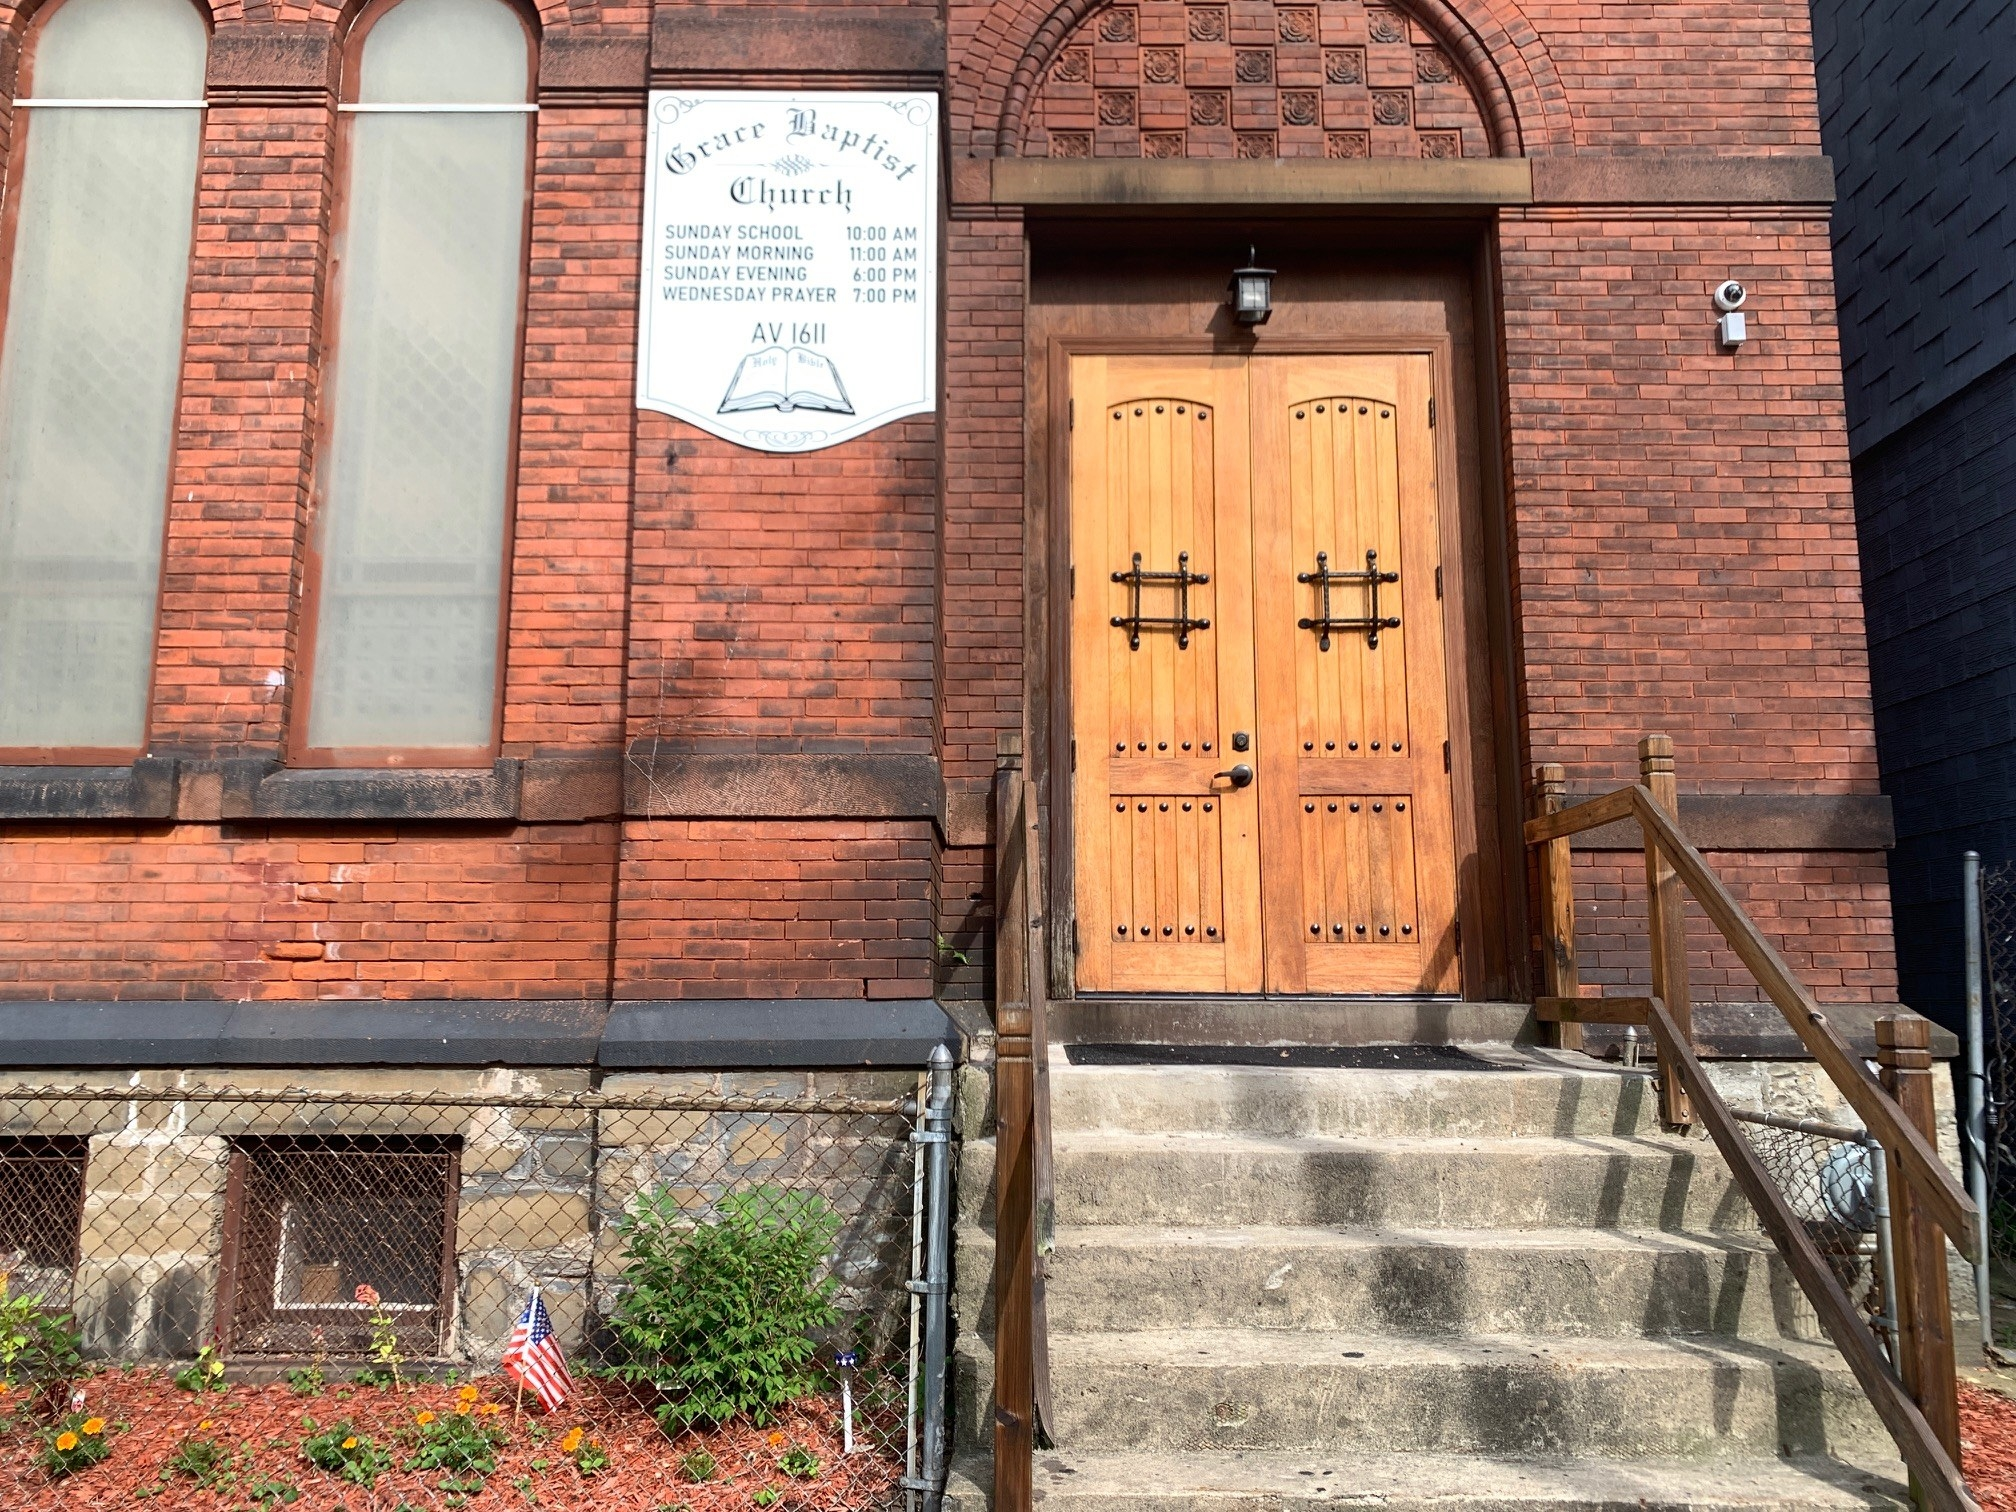 The doorway to Grace Baptist Church